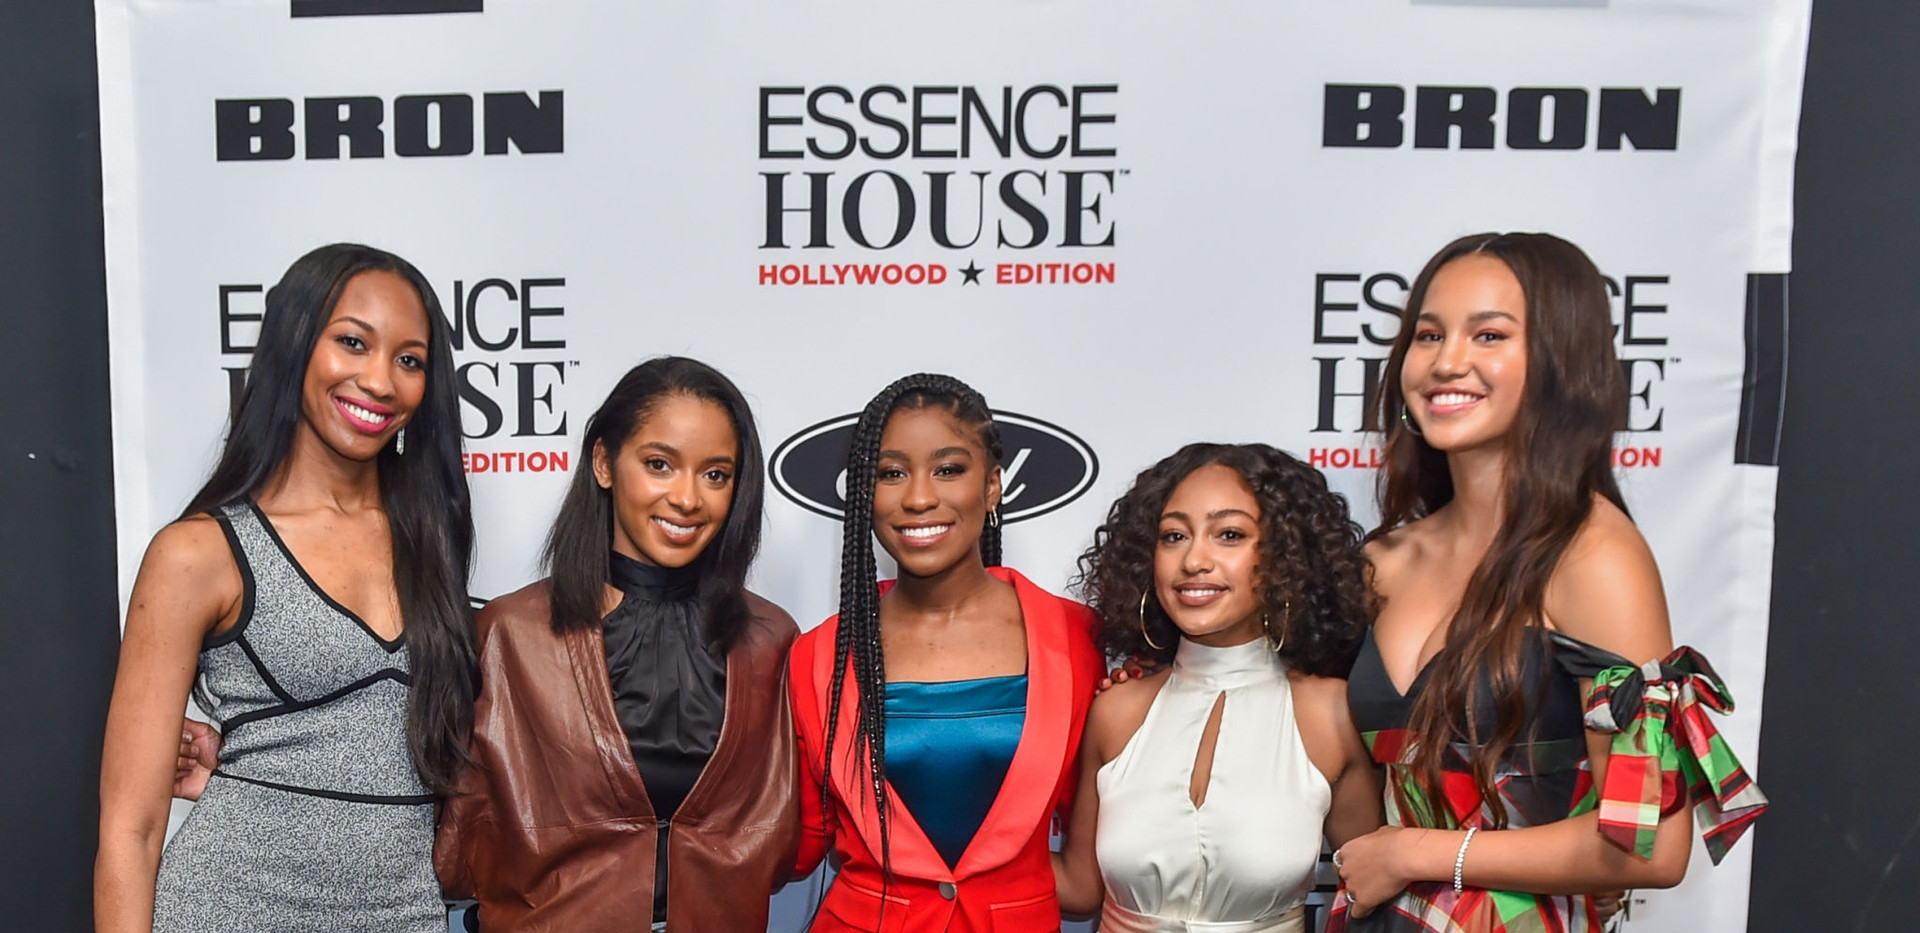 (Left to Right) Joi-Marie McKenzie, Rechelle Dennis, Lyric Ross, Lexi Underwood and Sofia Wylie